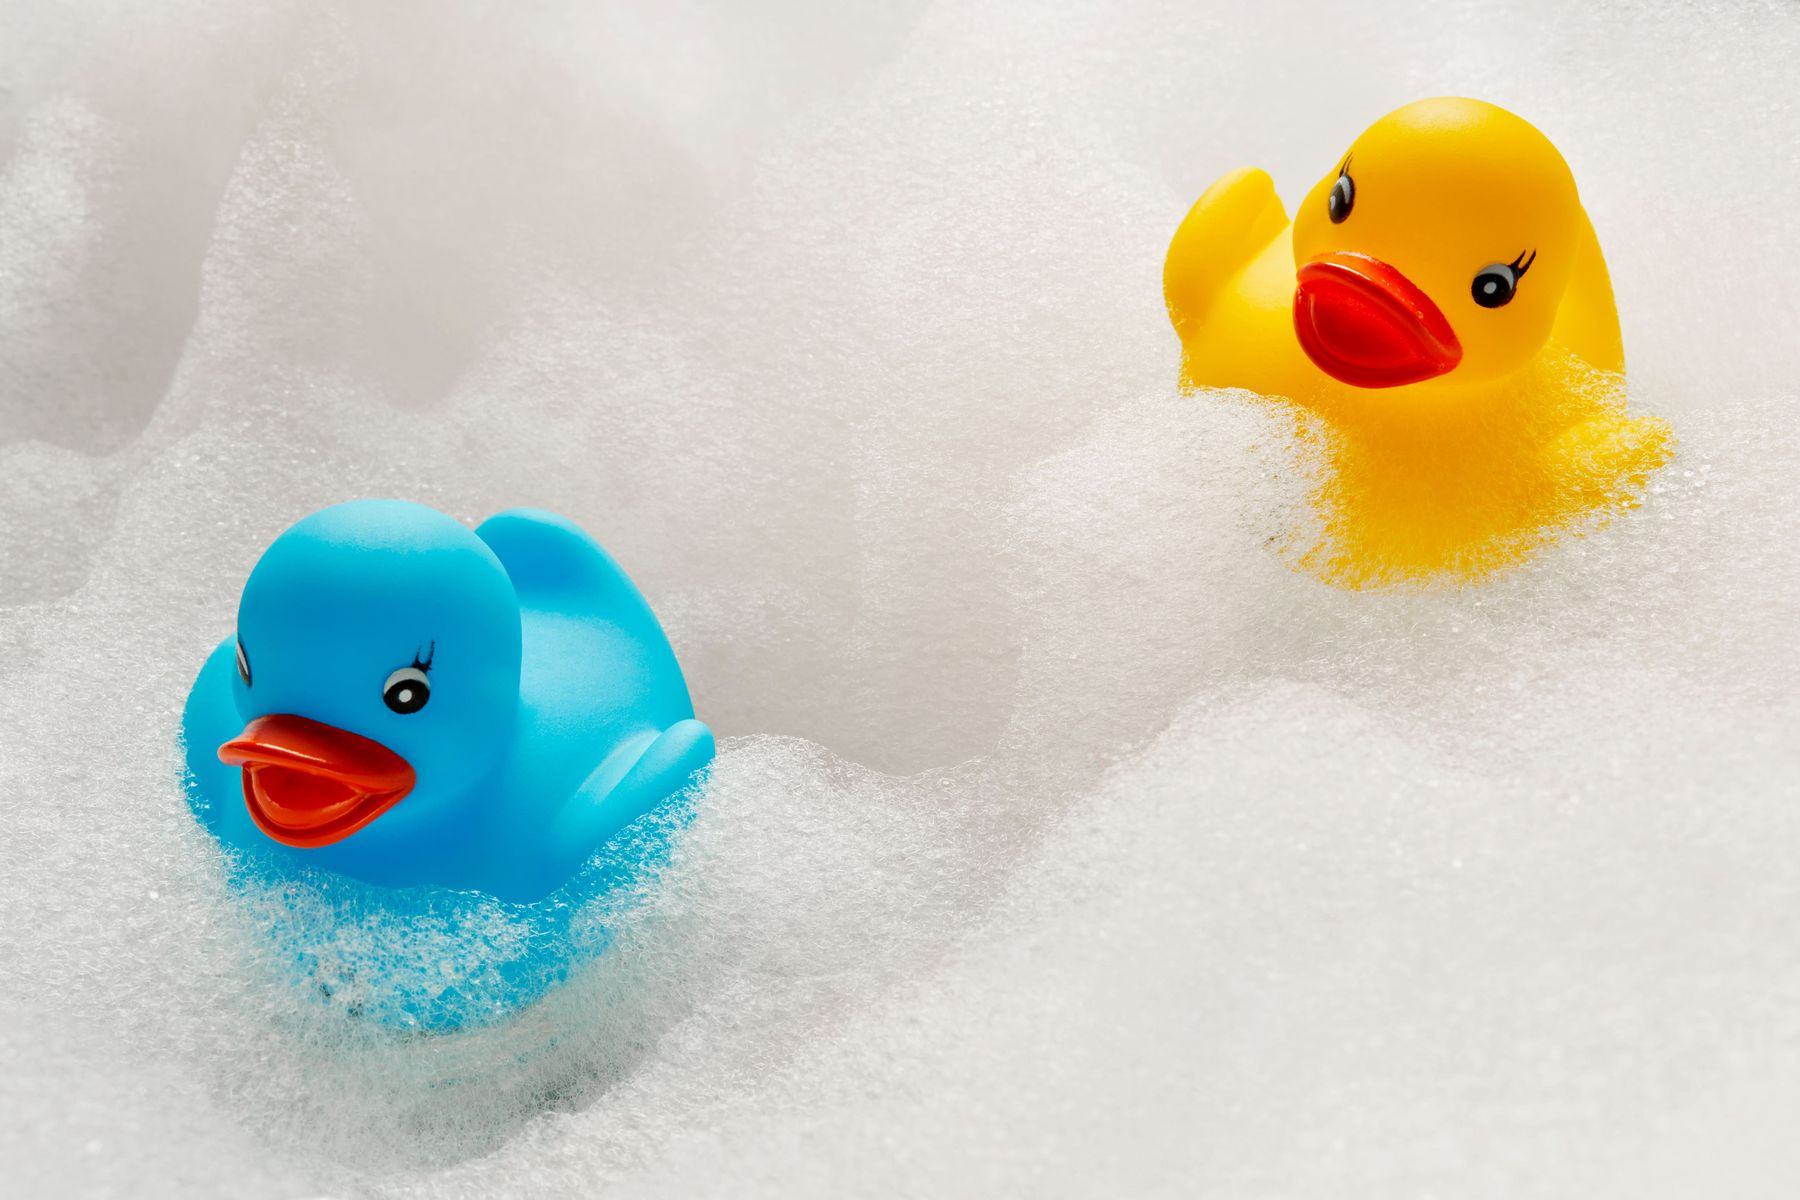 clean baby toy rubber ducks in a bath